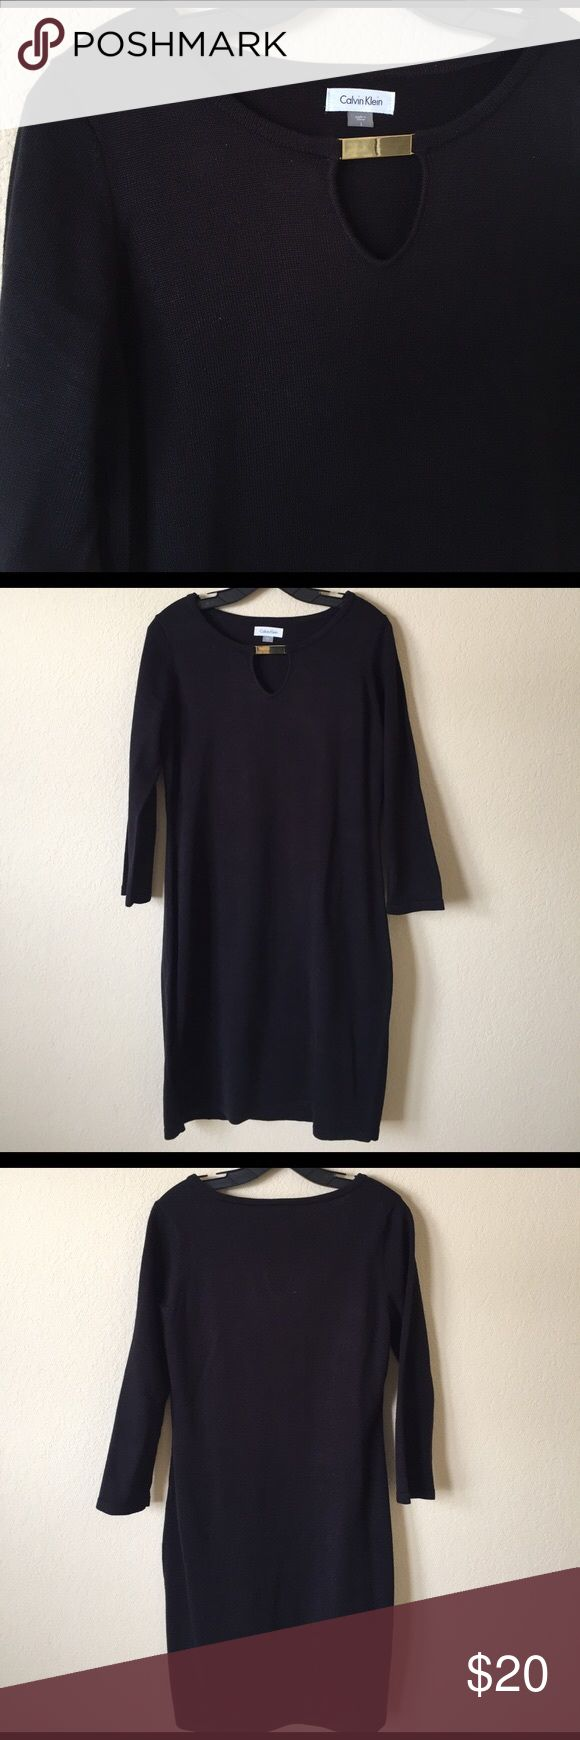 "Calvin Klein Keyhole Sweater Dress Calvin Klein Keyhole Sweater Dress  Like new condition! Worn one time only. Super chic and comfy. Can really be worn in any season. 3/4 sleeves. Bust measures 20"" across. Length from top of shoulder is 38 size L Calvin Klein Dresses"